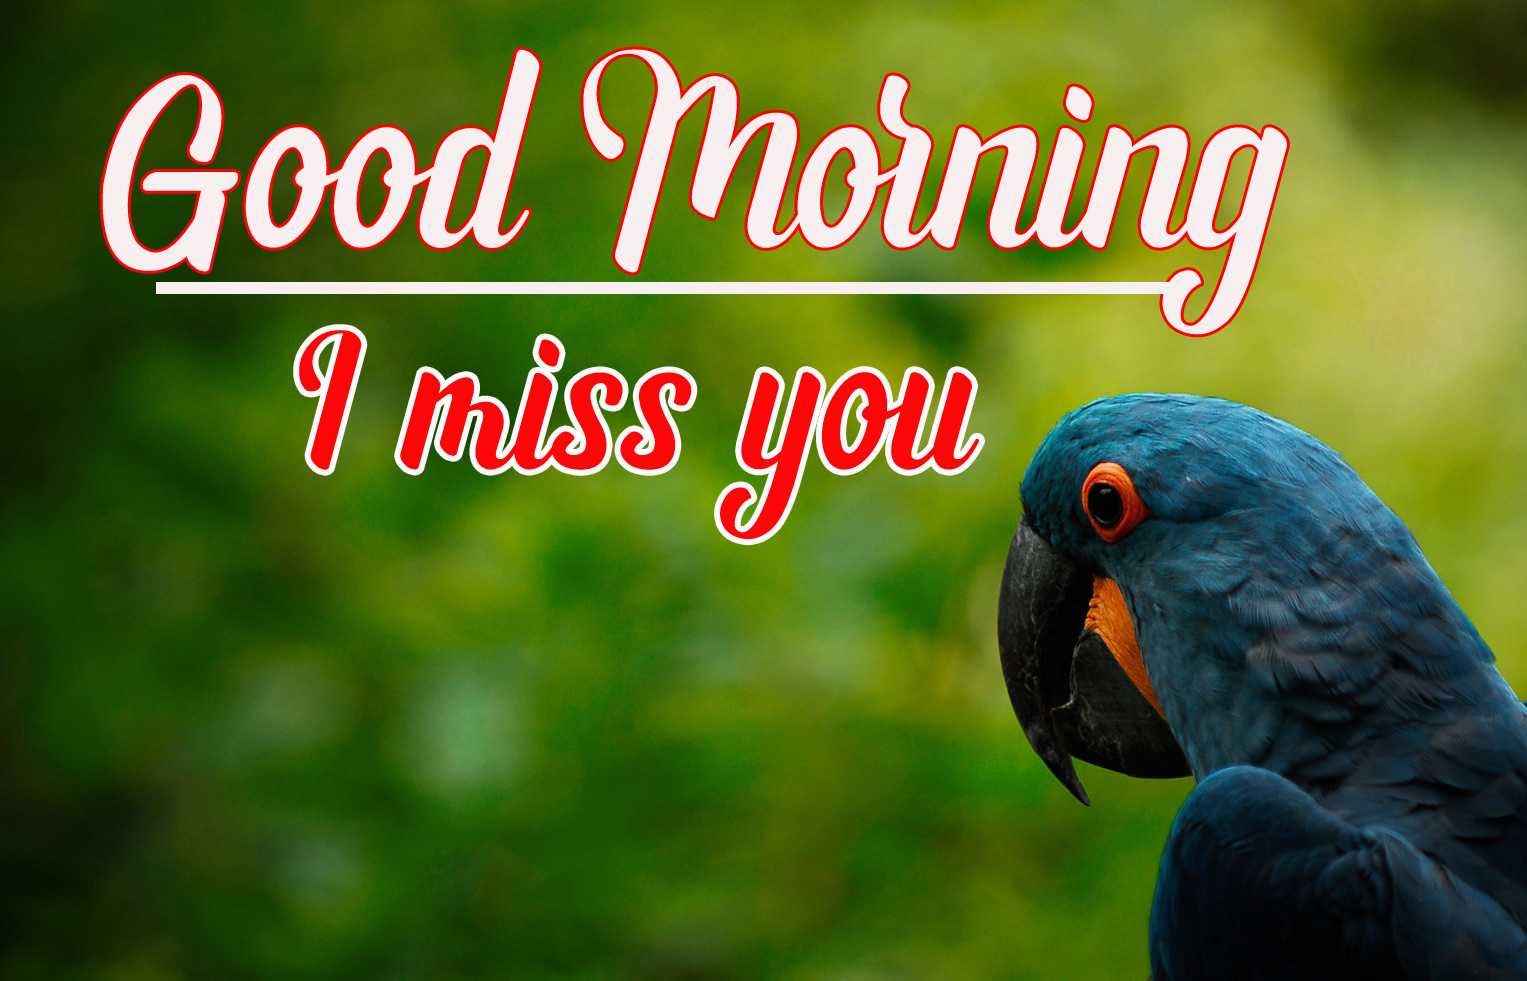 Beautiful Good Morning Images Pics Wallpaper Free Download